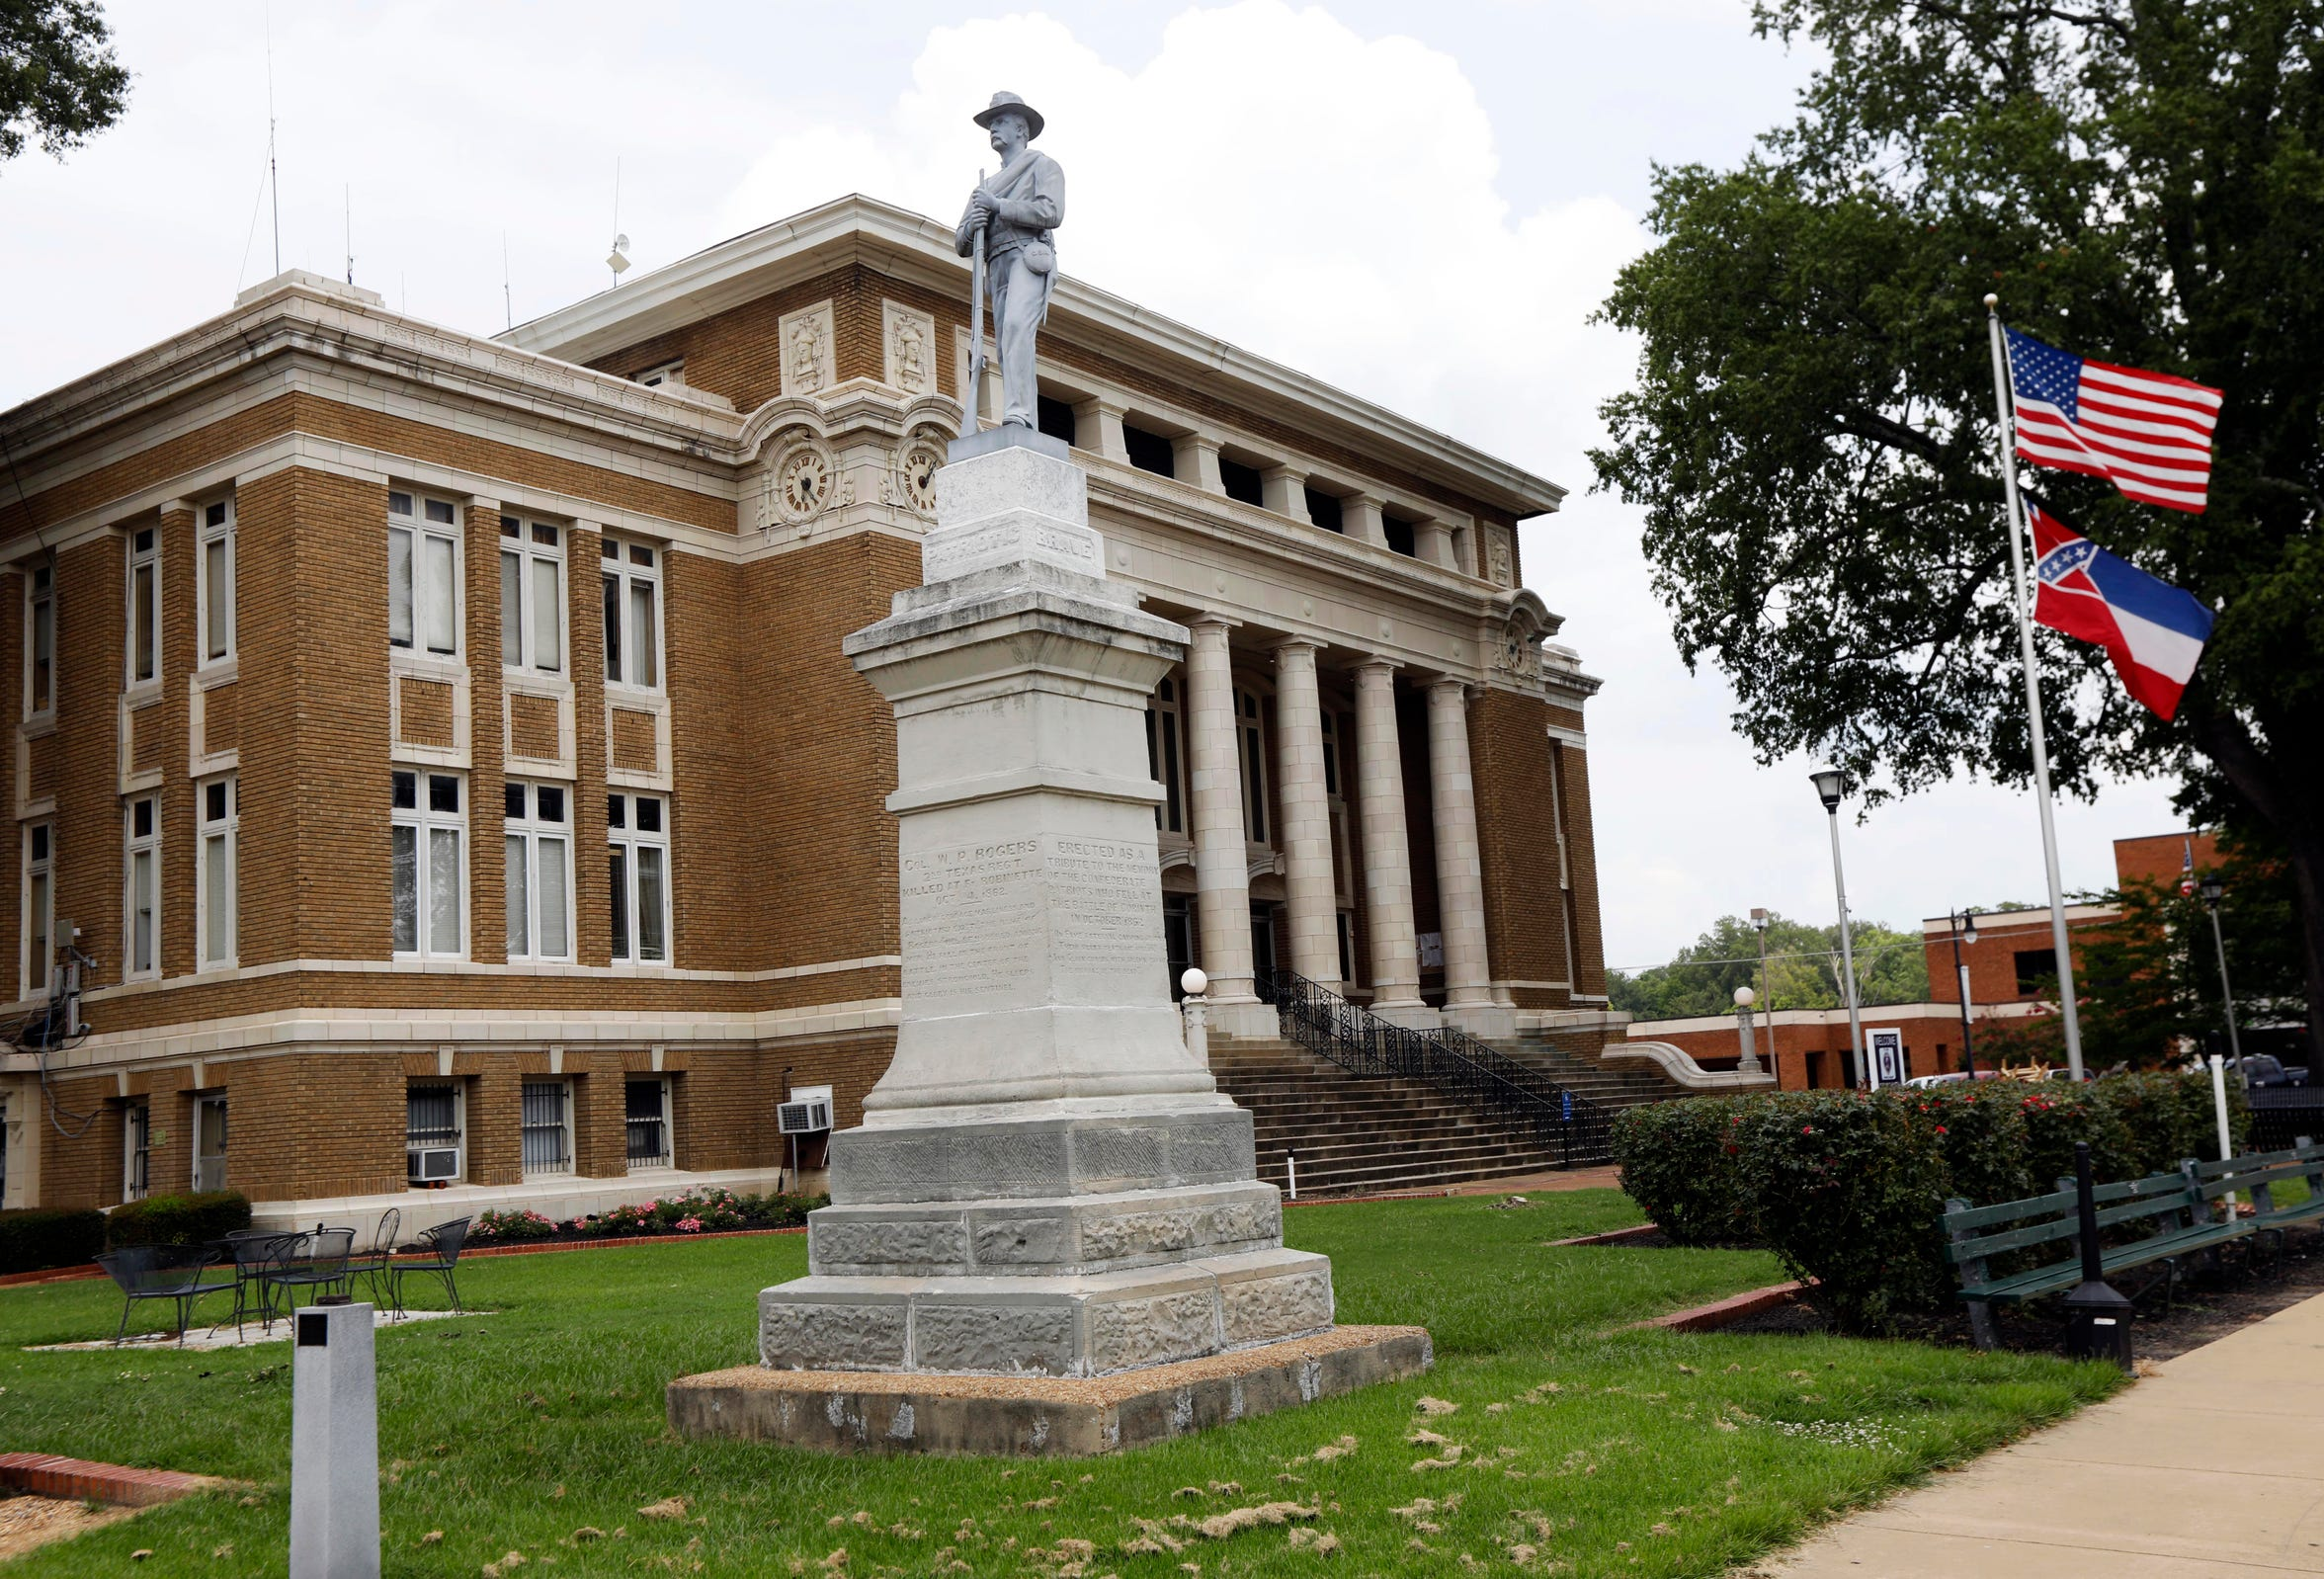 In this July 30, 2018 photo, a statue honoring the Confederate soldiers who fell at the battle of Corinth in 1862 stands outside a courthouse in the Corinth, Miss., town square. Inside the courthouse, old handwritten records show that on Jan. 26, 1960, Jerry Darnell Glidewell pleaded guilty to manslaughter.